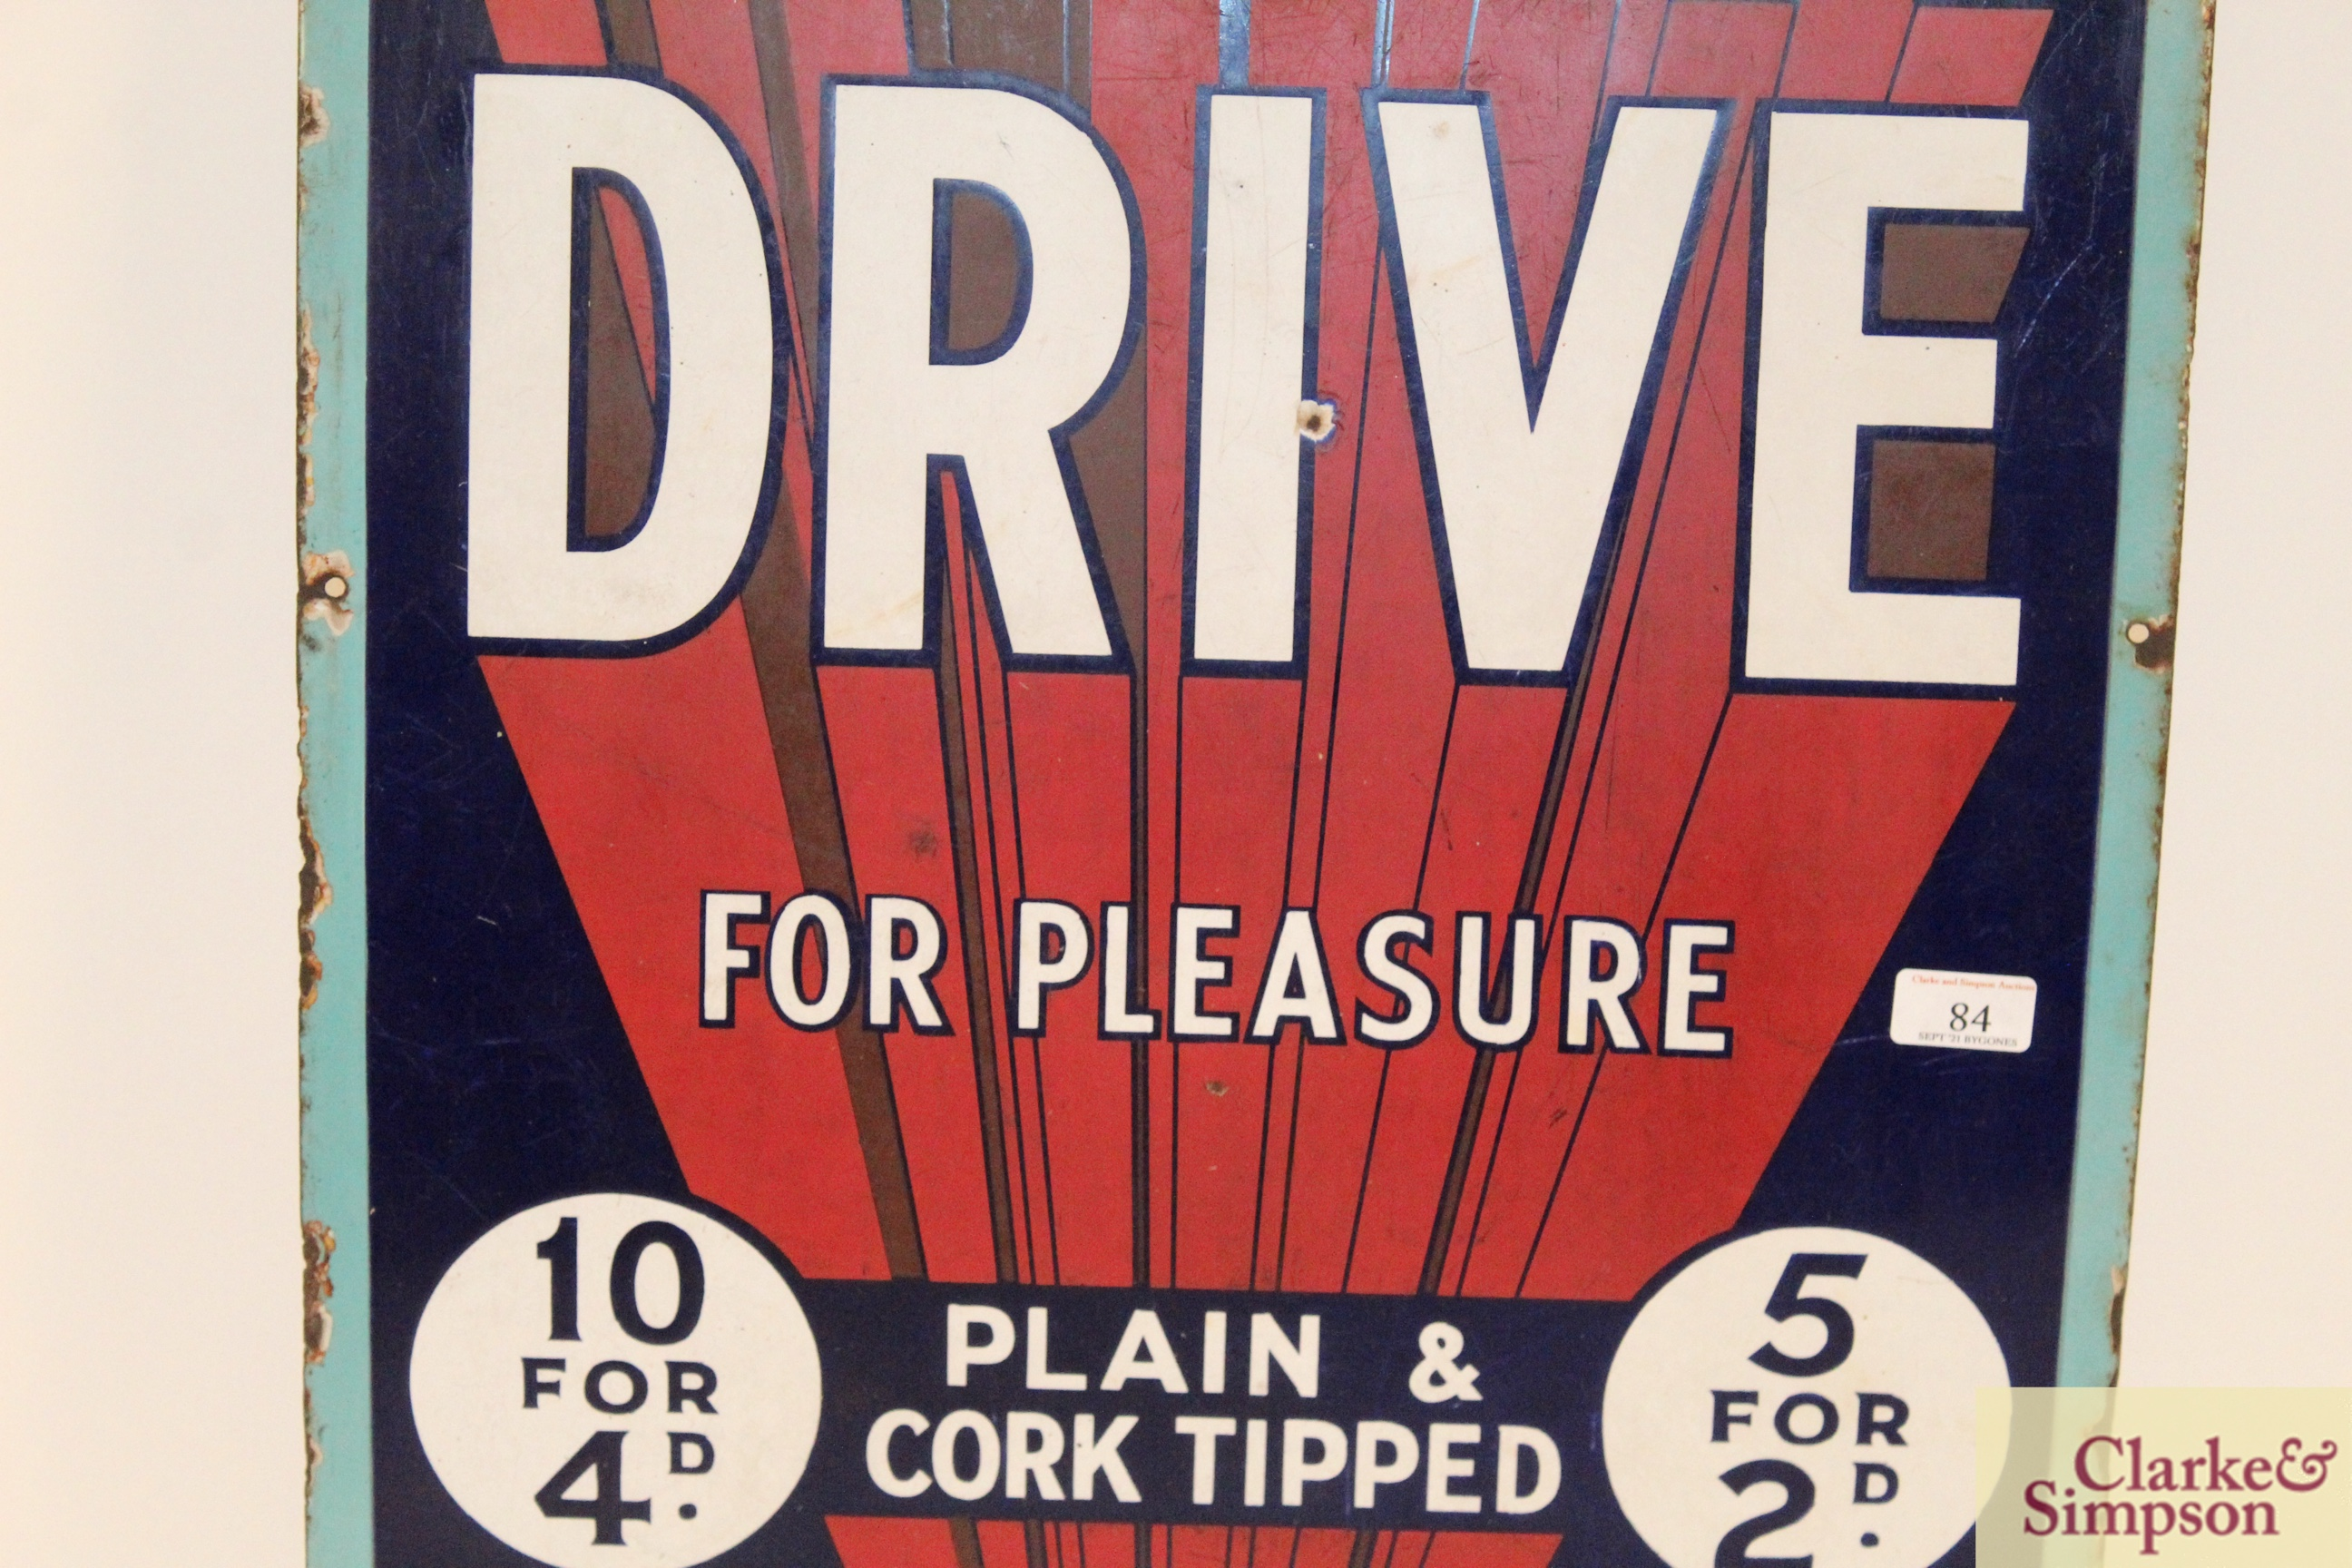 """A """"Park Drive For Pleasure"""" plain and cork tipped - Image 3 of 8"""